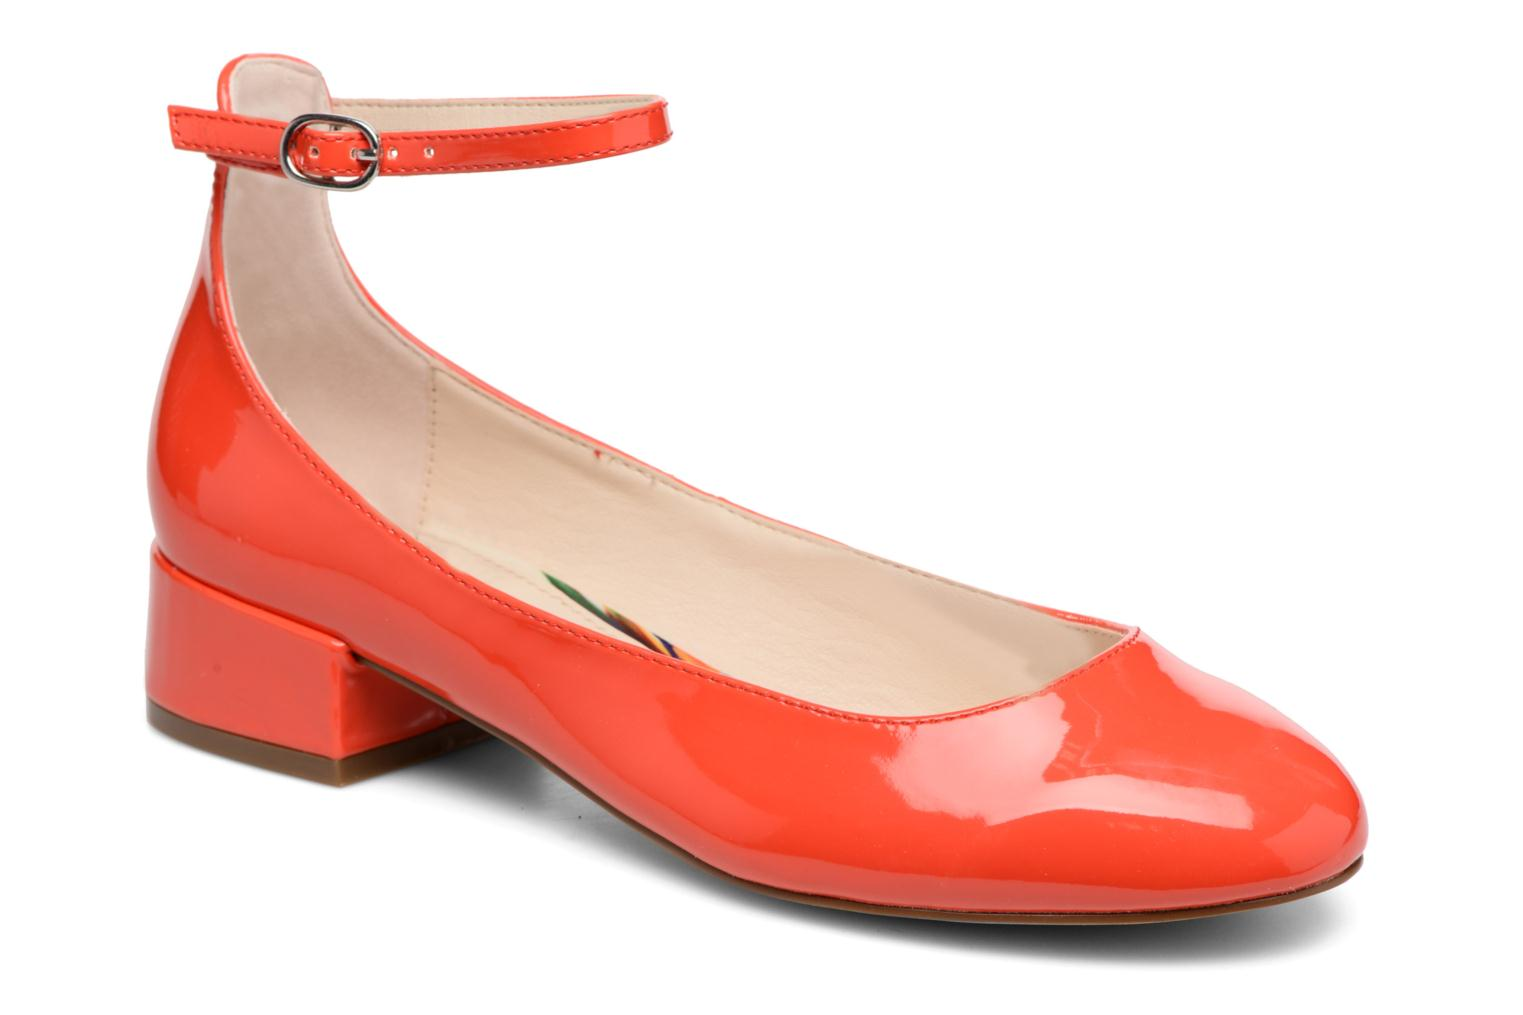 Marques Chaussure femme I Love Shoes femme BLIJ 31- RED